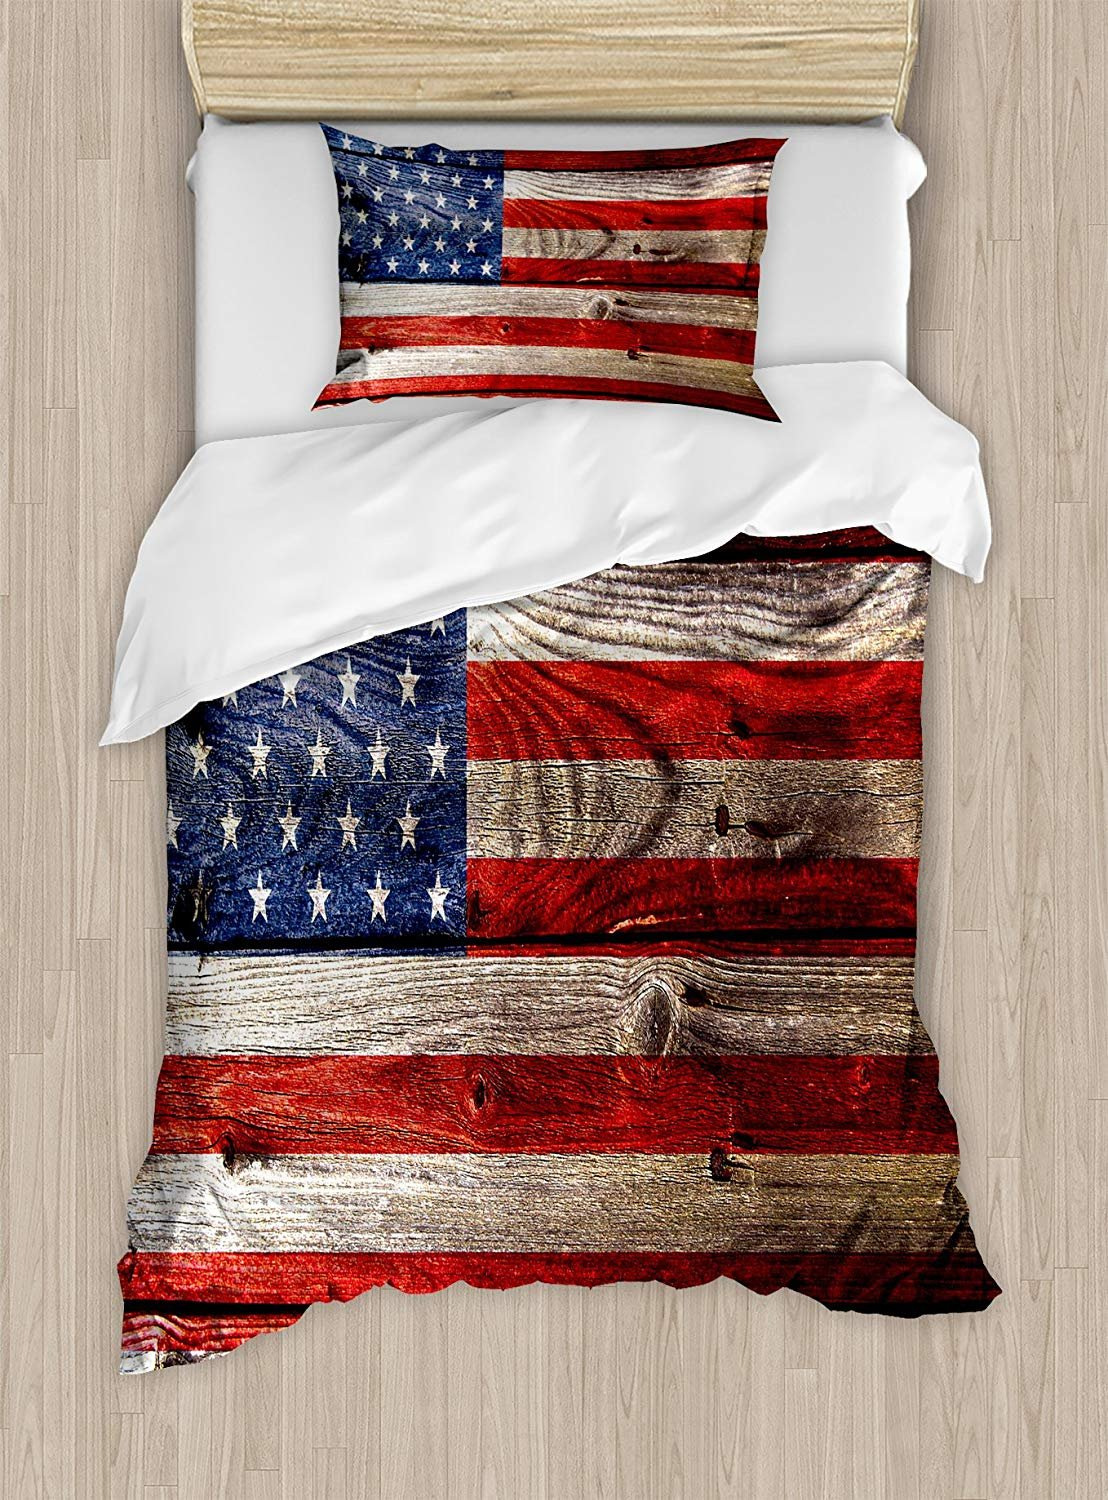 Twin XL Extra Long Bedding Set, USA Duvet Cover Set, Fourth of July Independence Day Weathered Retro Wood Wall LooKing Country Emblem, Include 1 Flat Sheet 1 Duvet Cover and 2 Pillow Cases